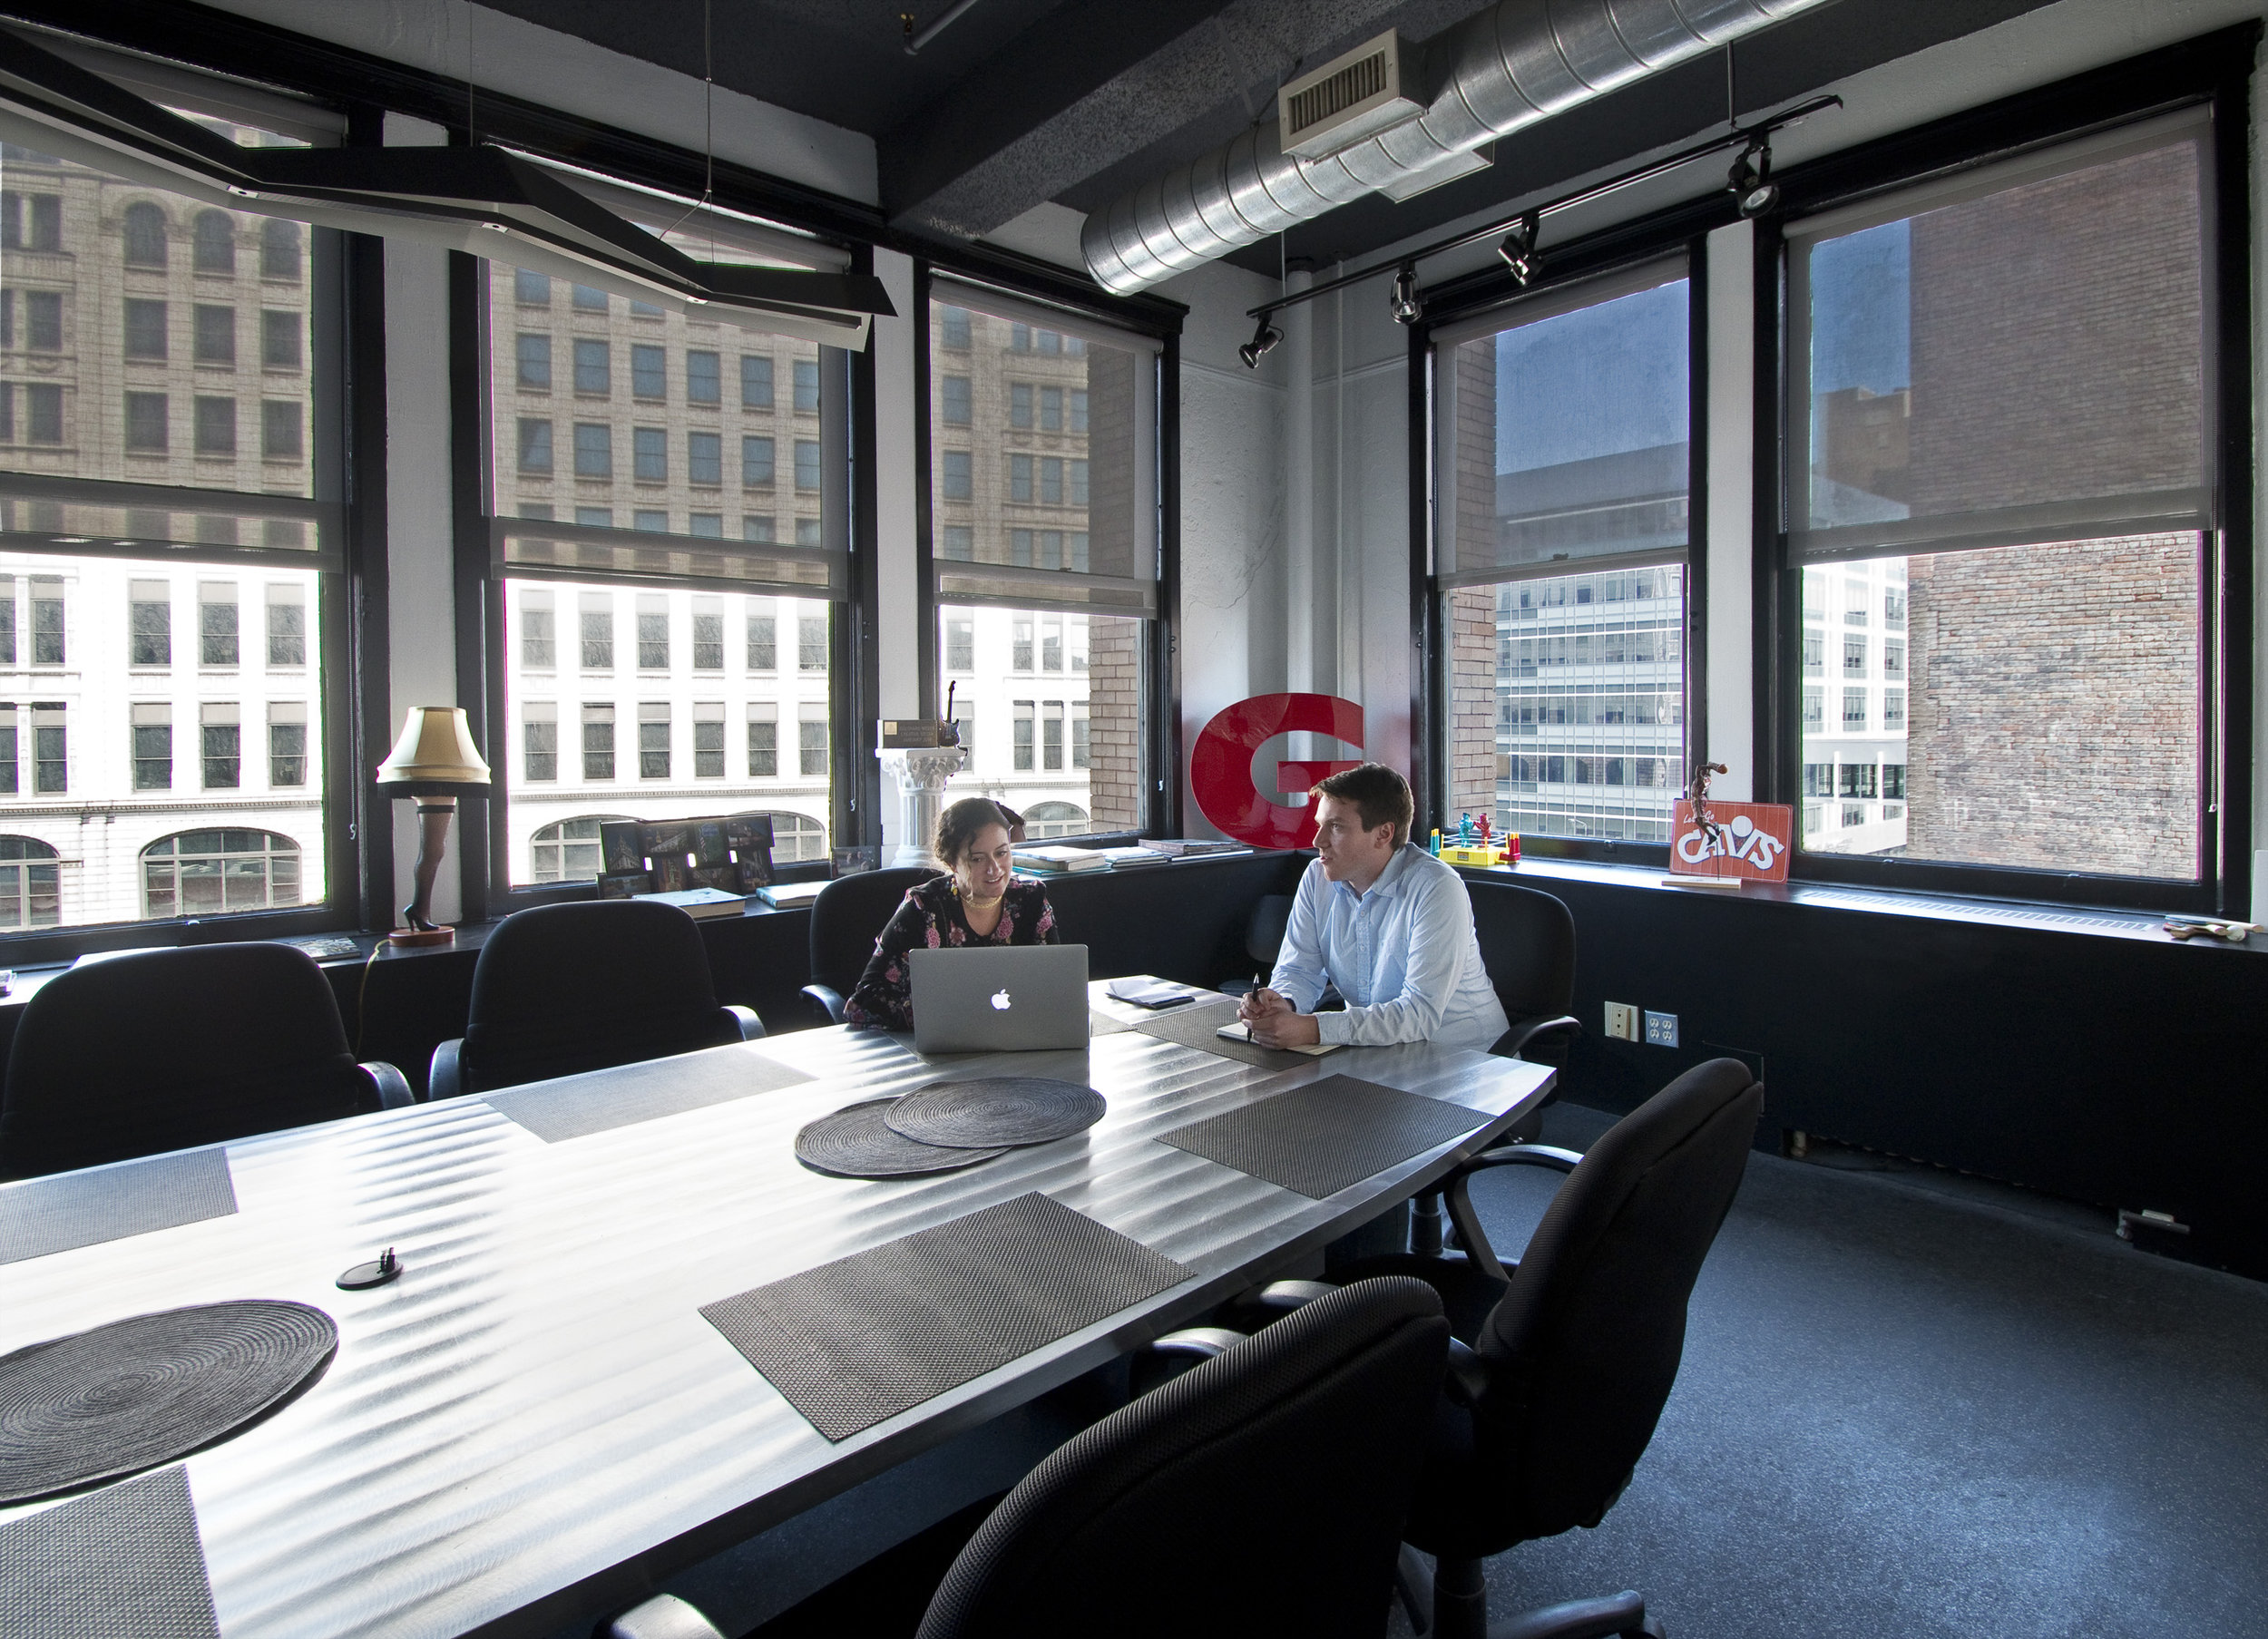 caxton building office conference room meeting